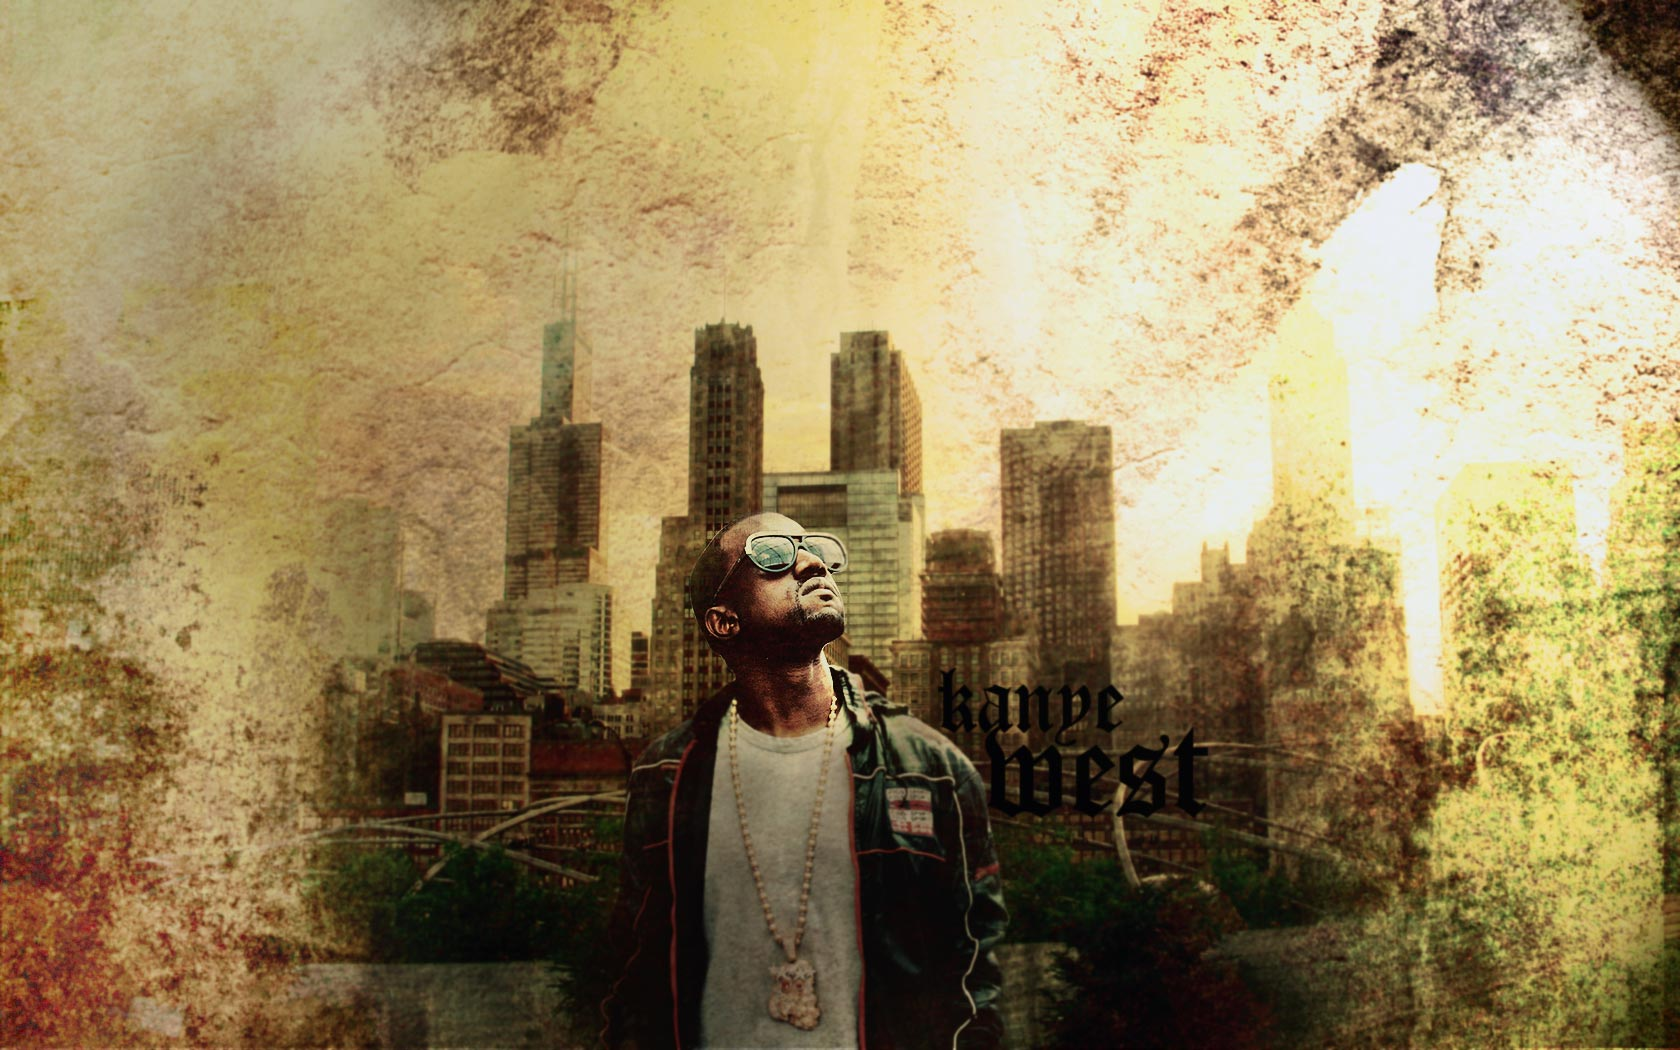 kanye west desktop wallpaper screensaver background hd big city power 1680x1050